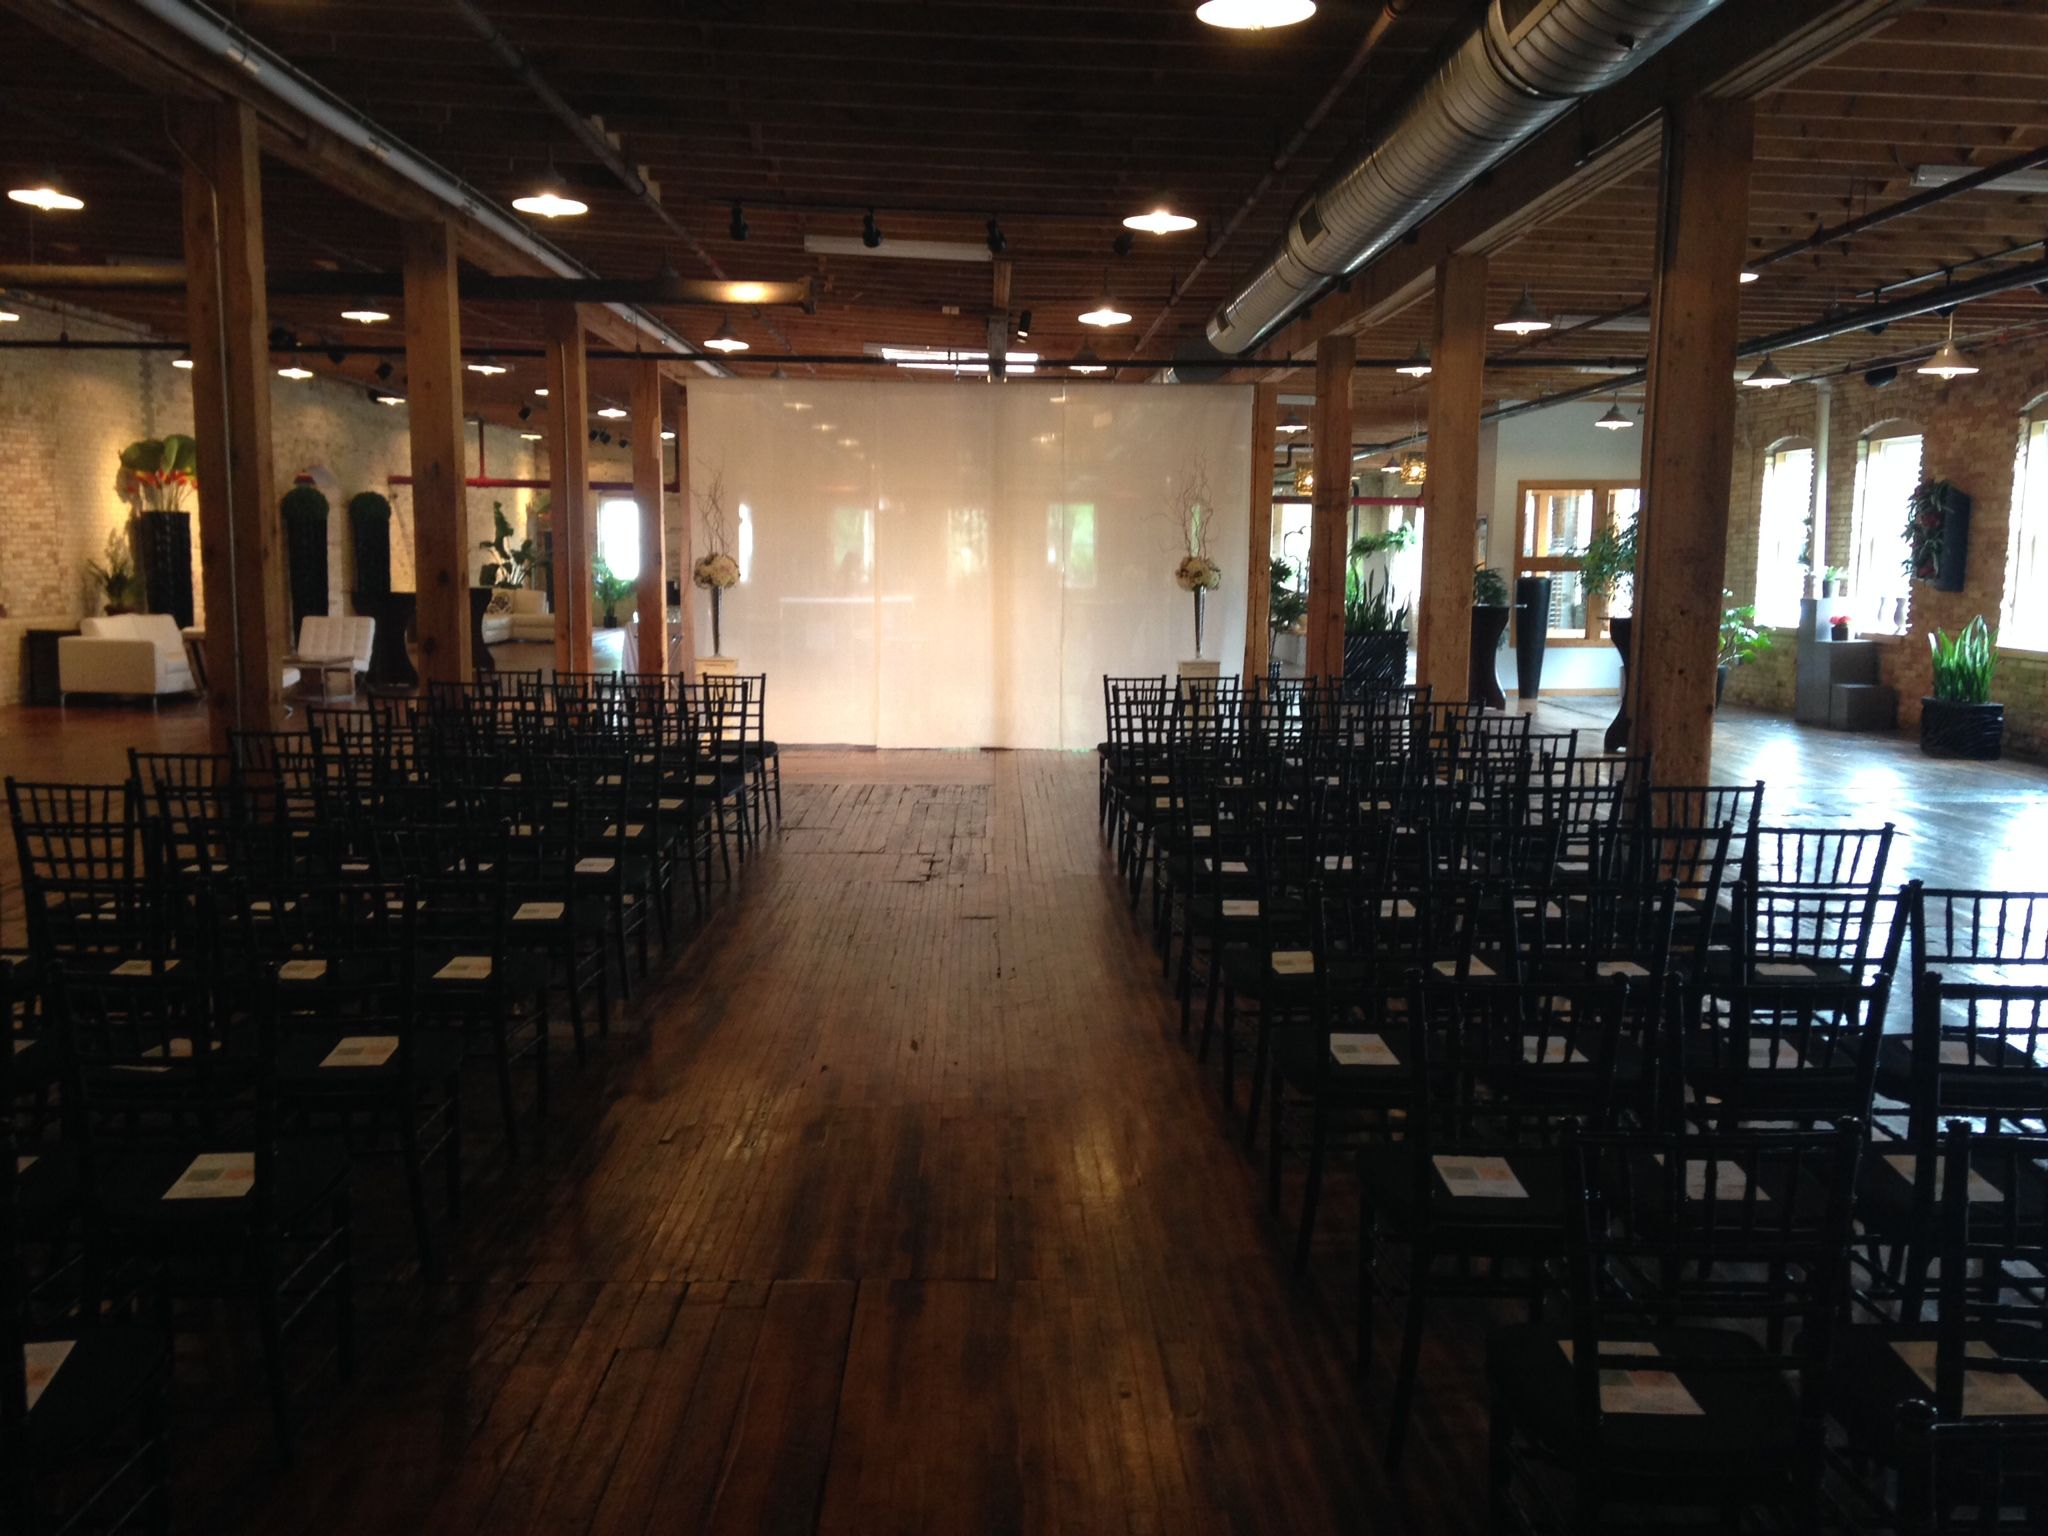 A wedding Ceremony set up for a wedding at The Goei Center.